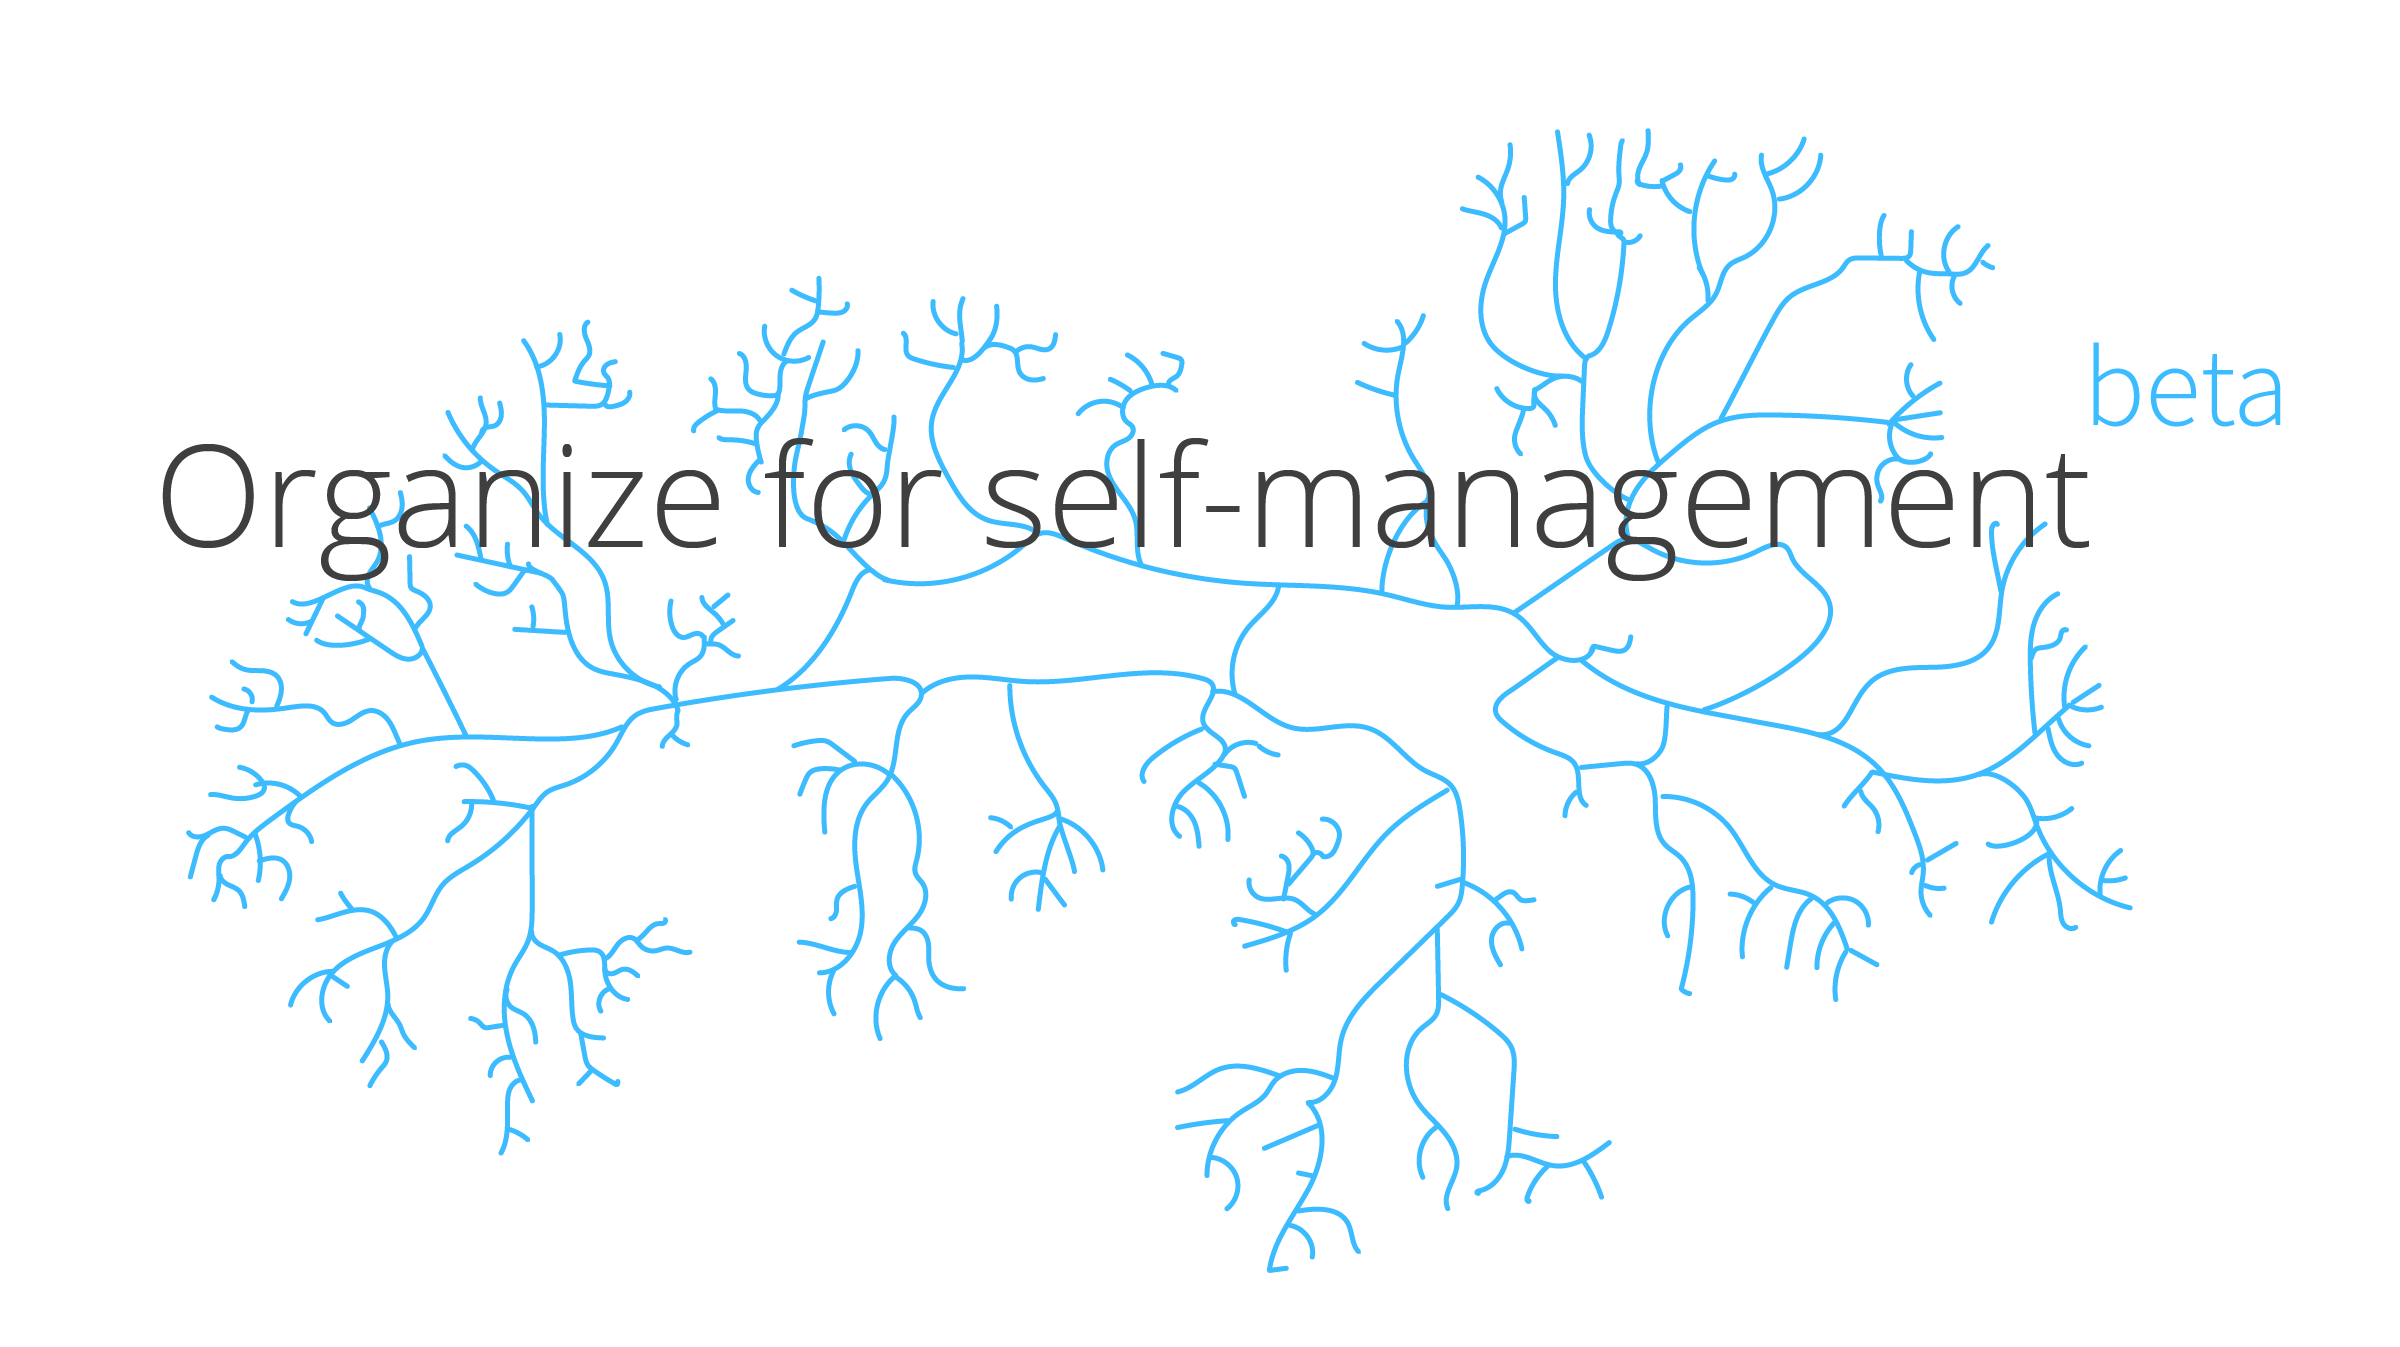 Organize for Self Management